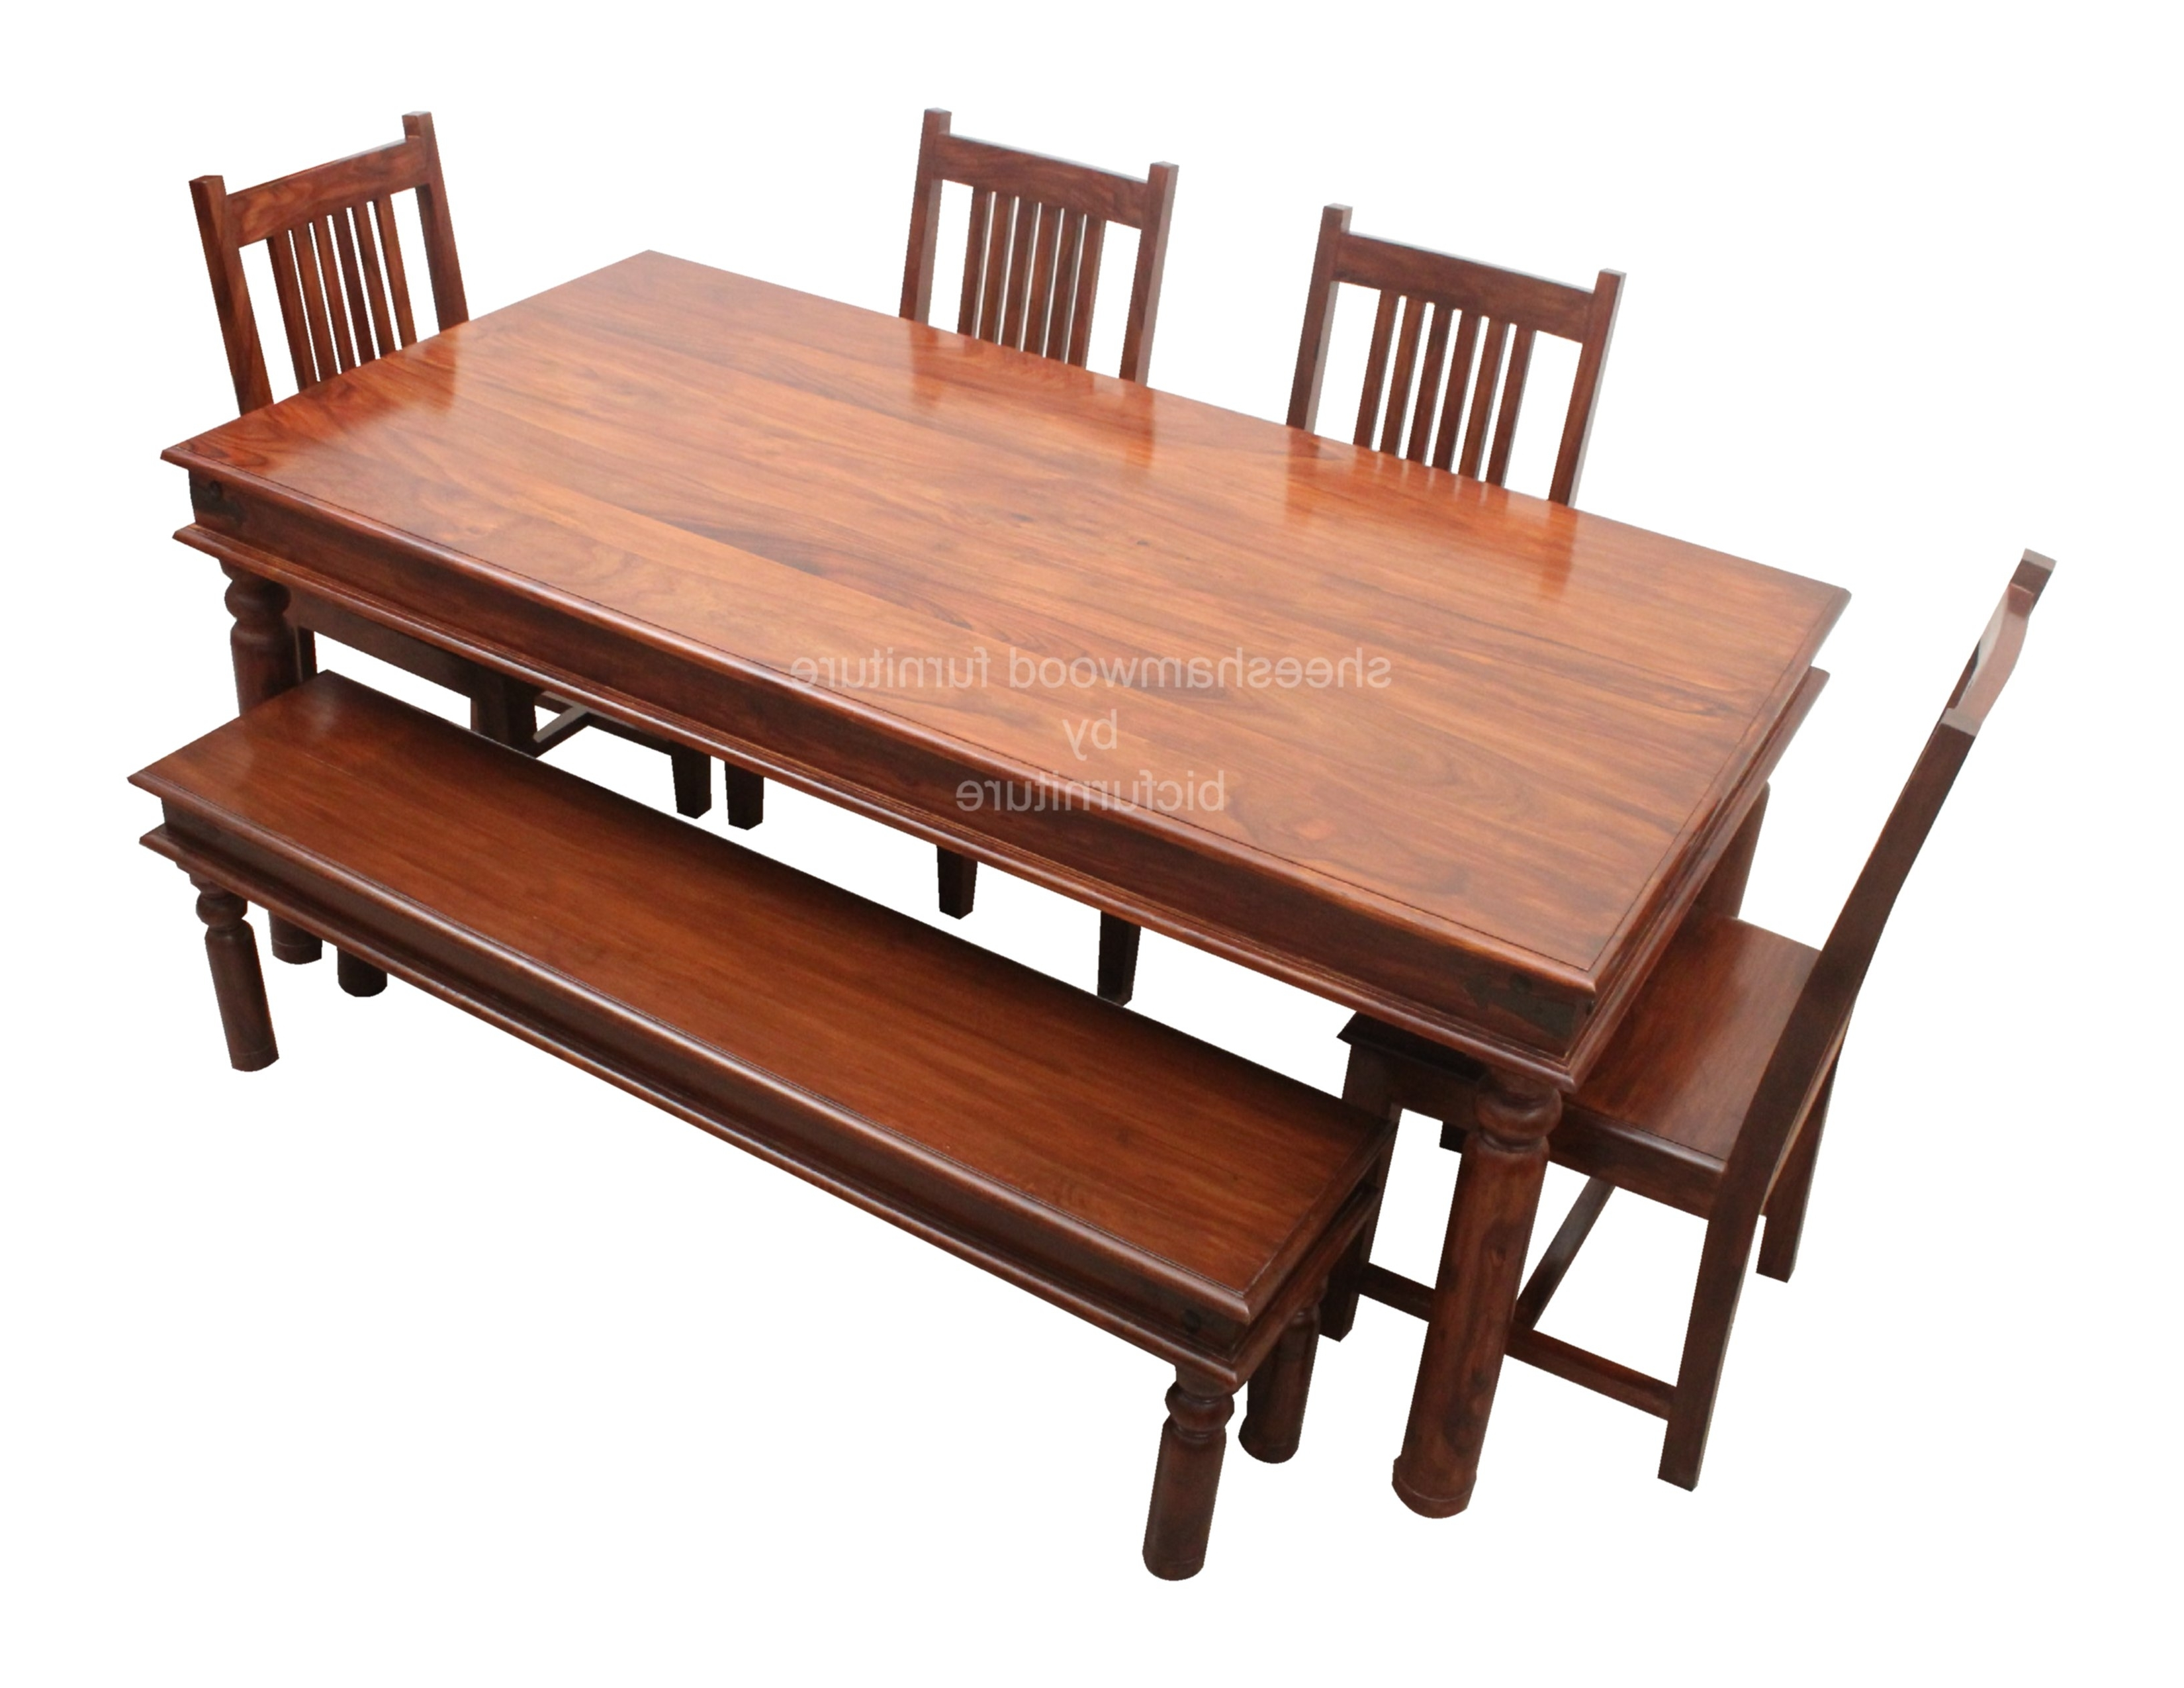 Sturdy Solid Wood Dining Set In Sheesham Wood In Well Known Six Seater Dining Tables (View 5 of 25)